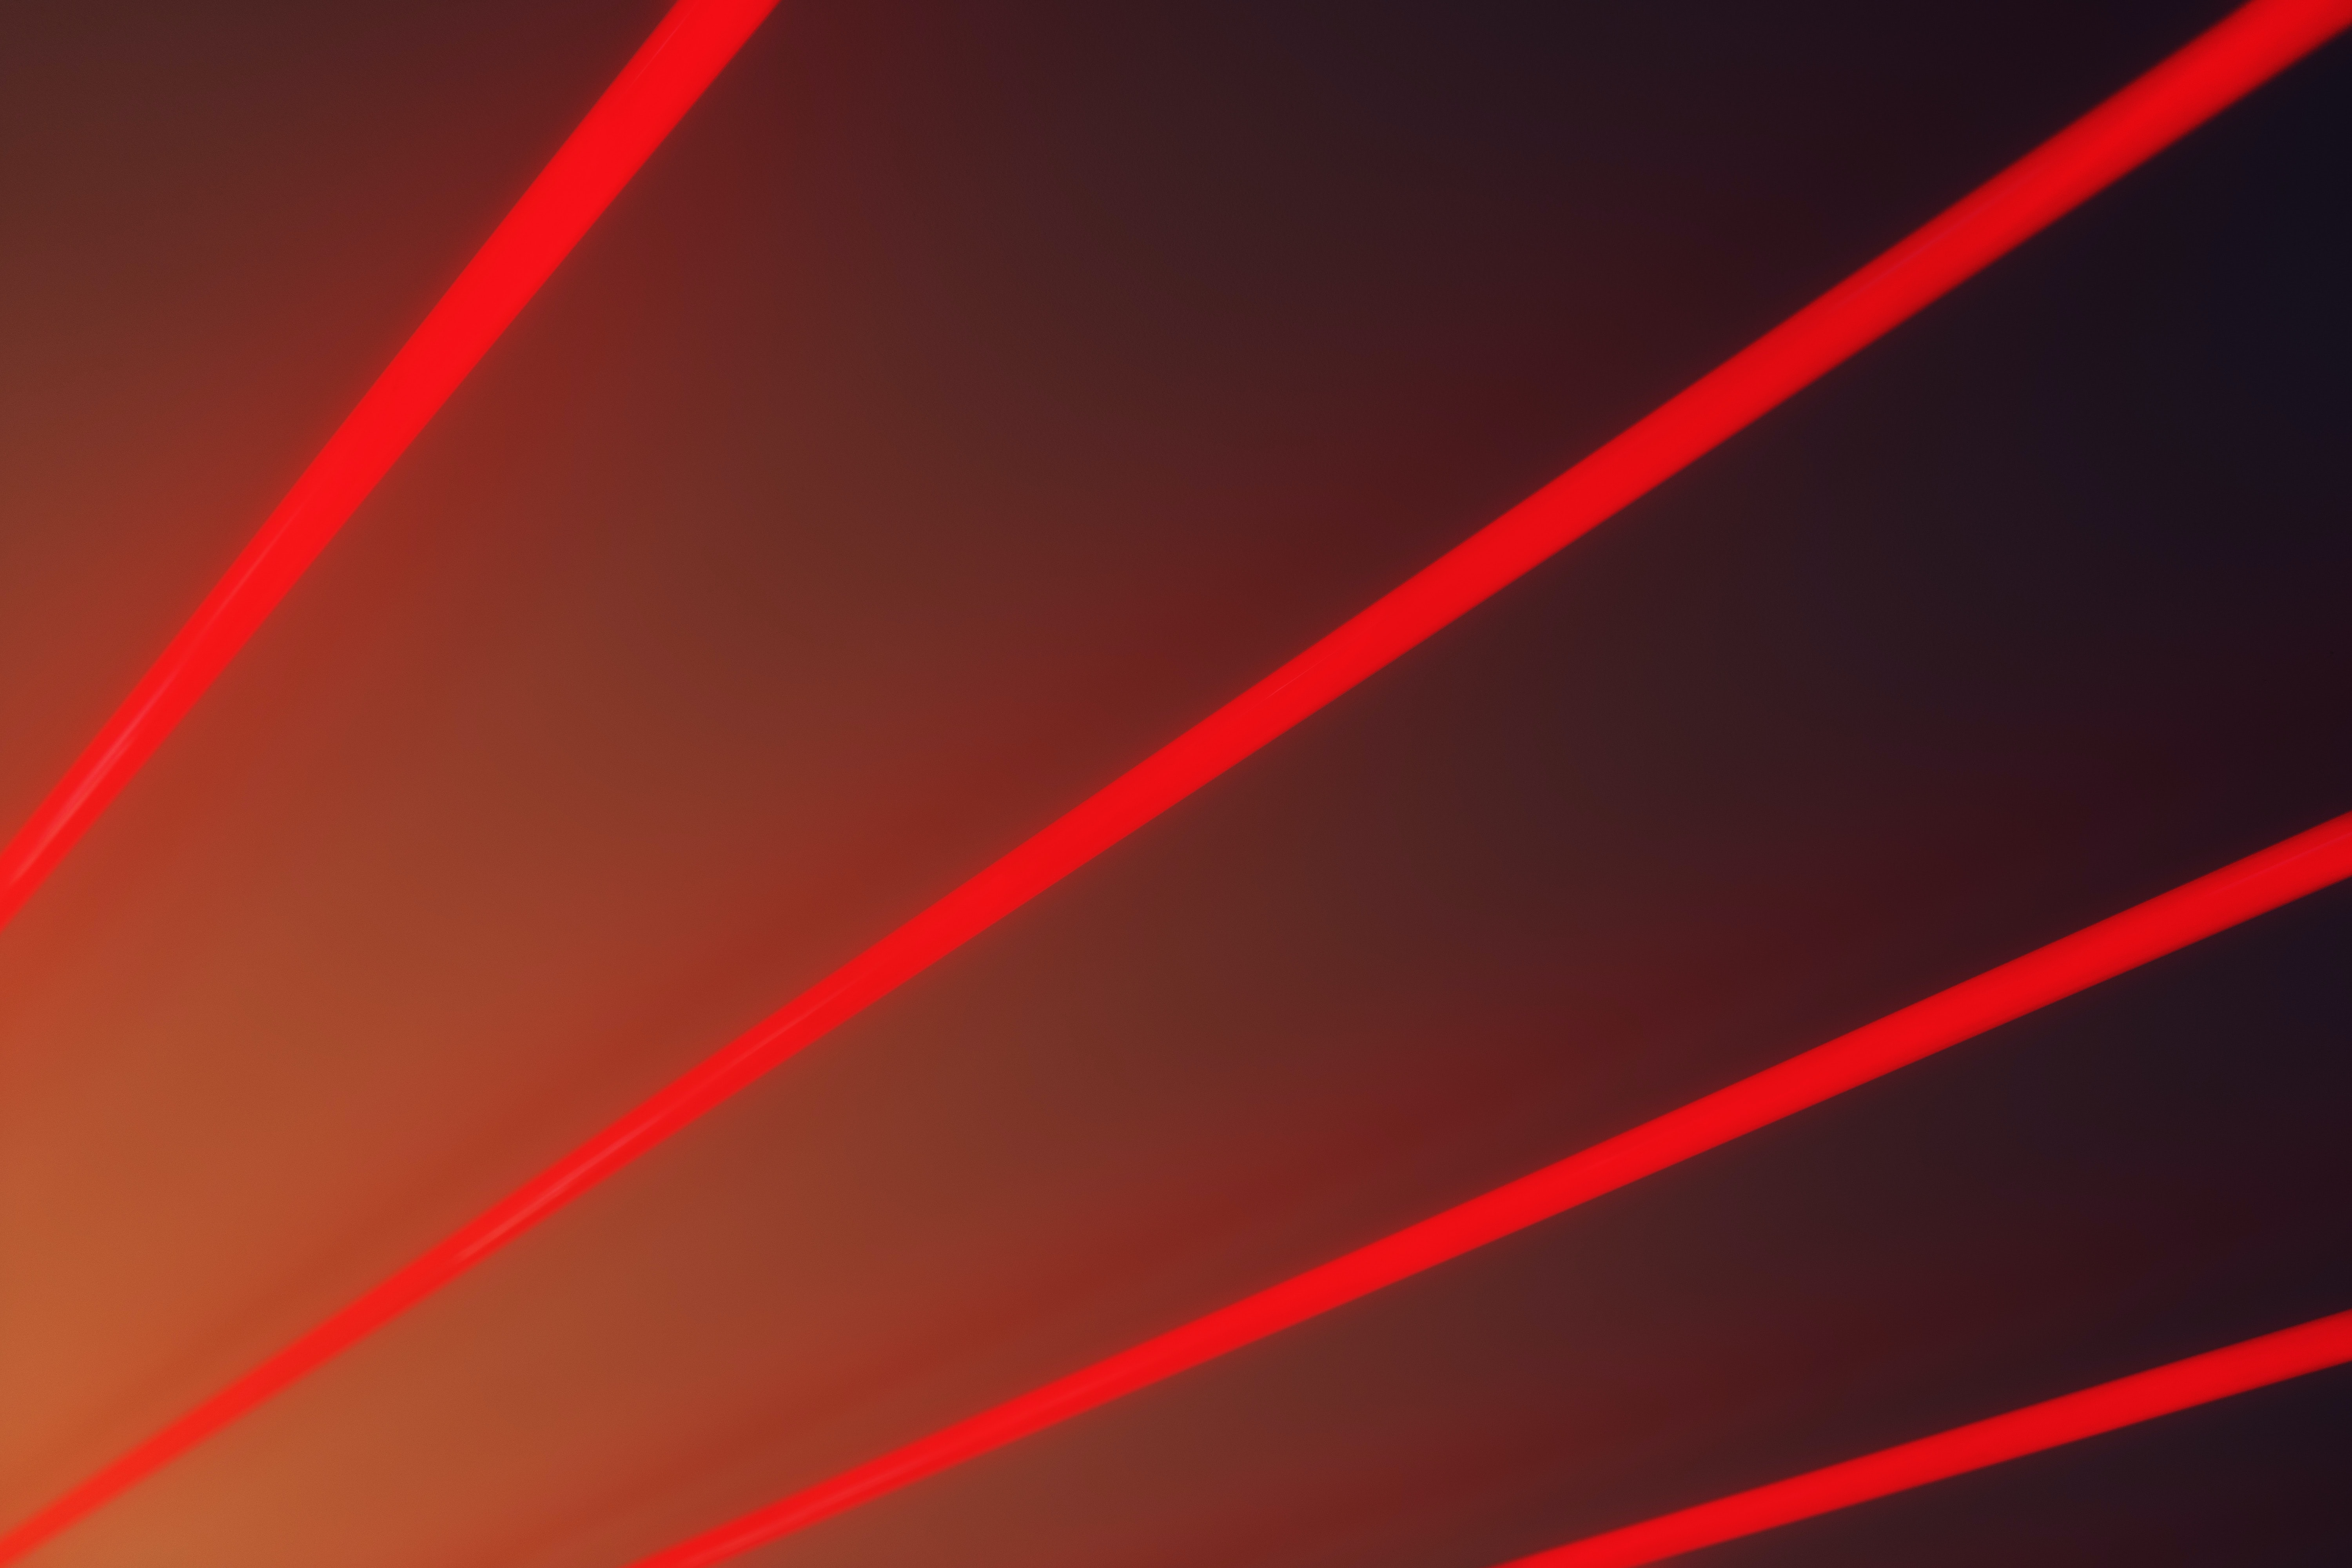 Red lasers shooting across.